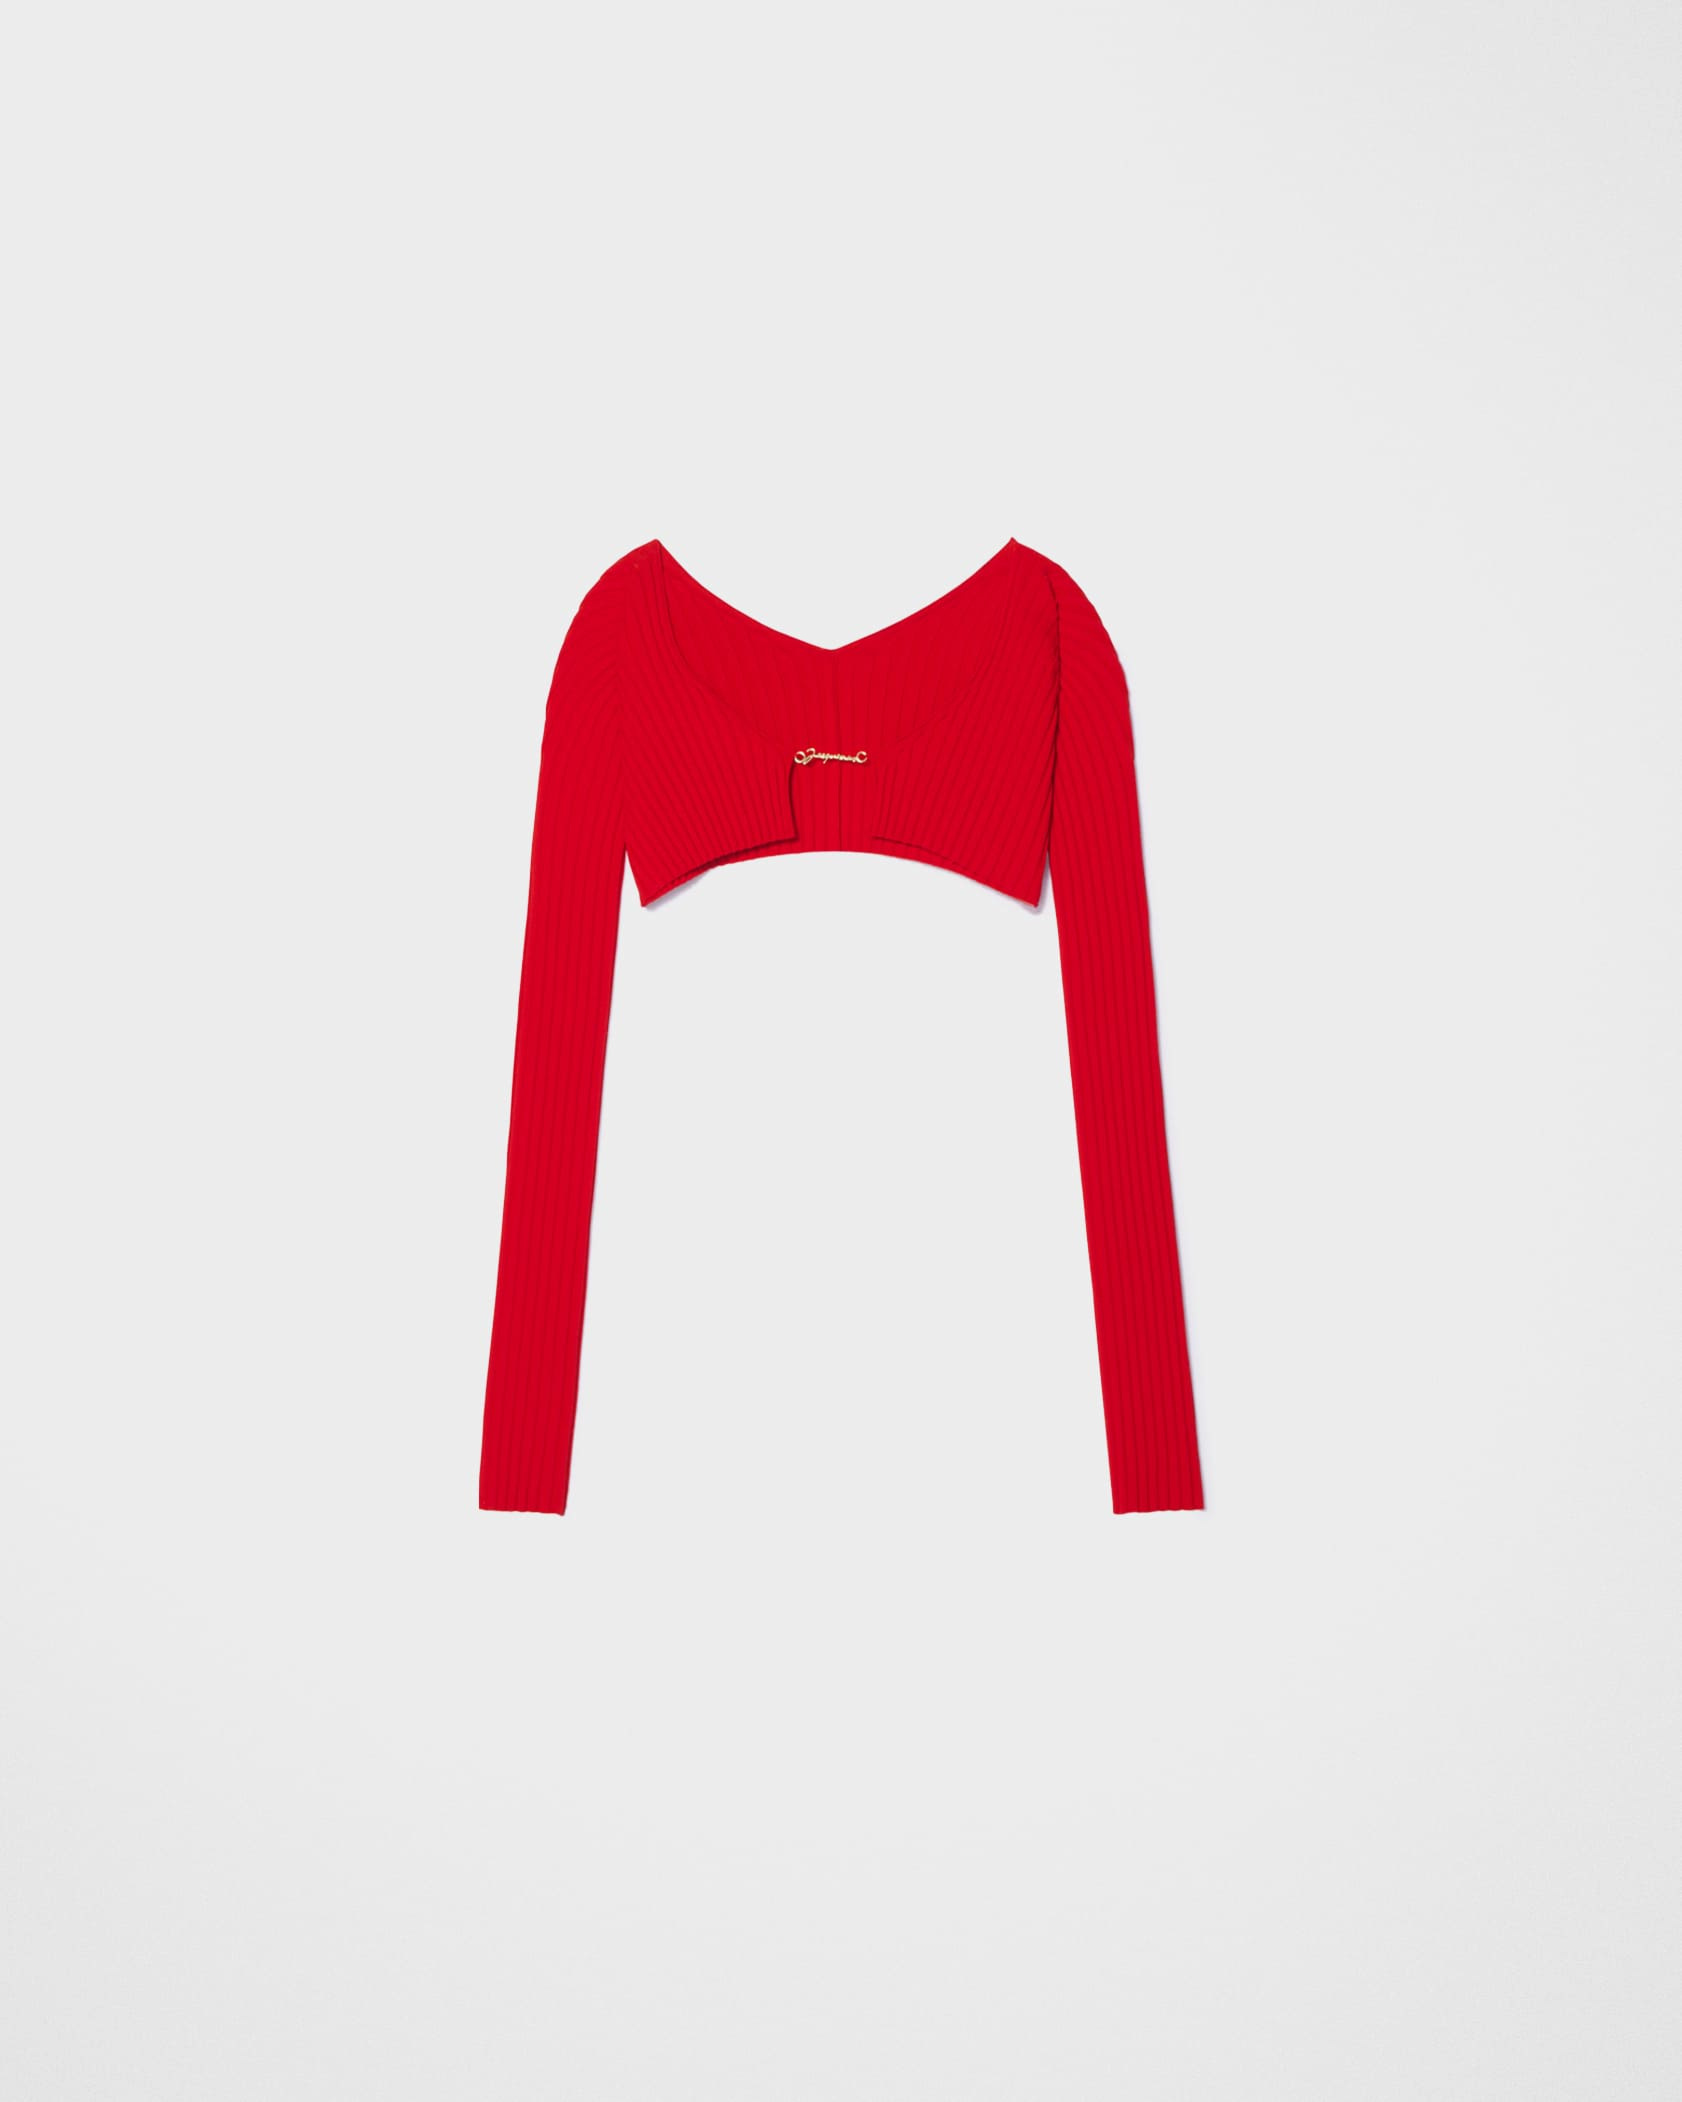 La maille Pralù by Jacquemus, available on jacquemus.com for $300 Kendall Jenner Top Exact Product